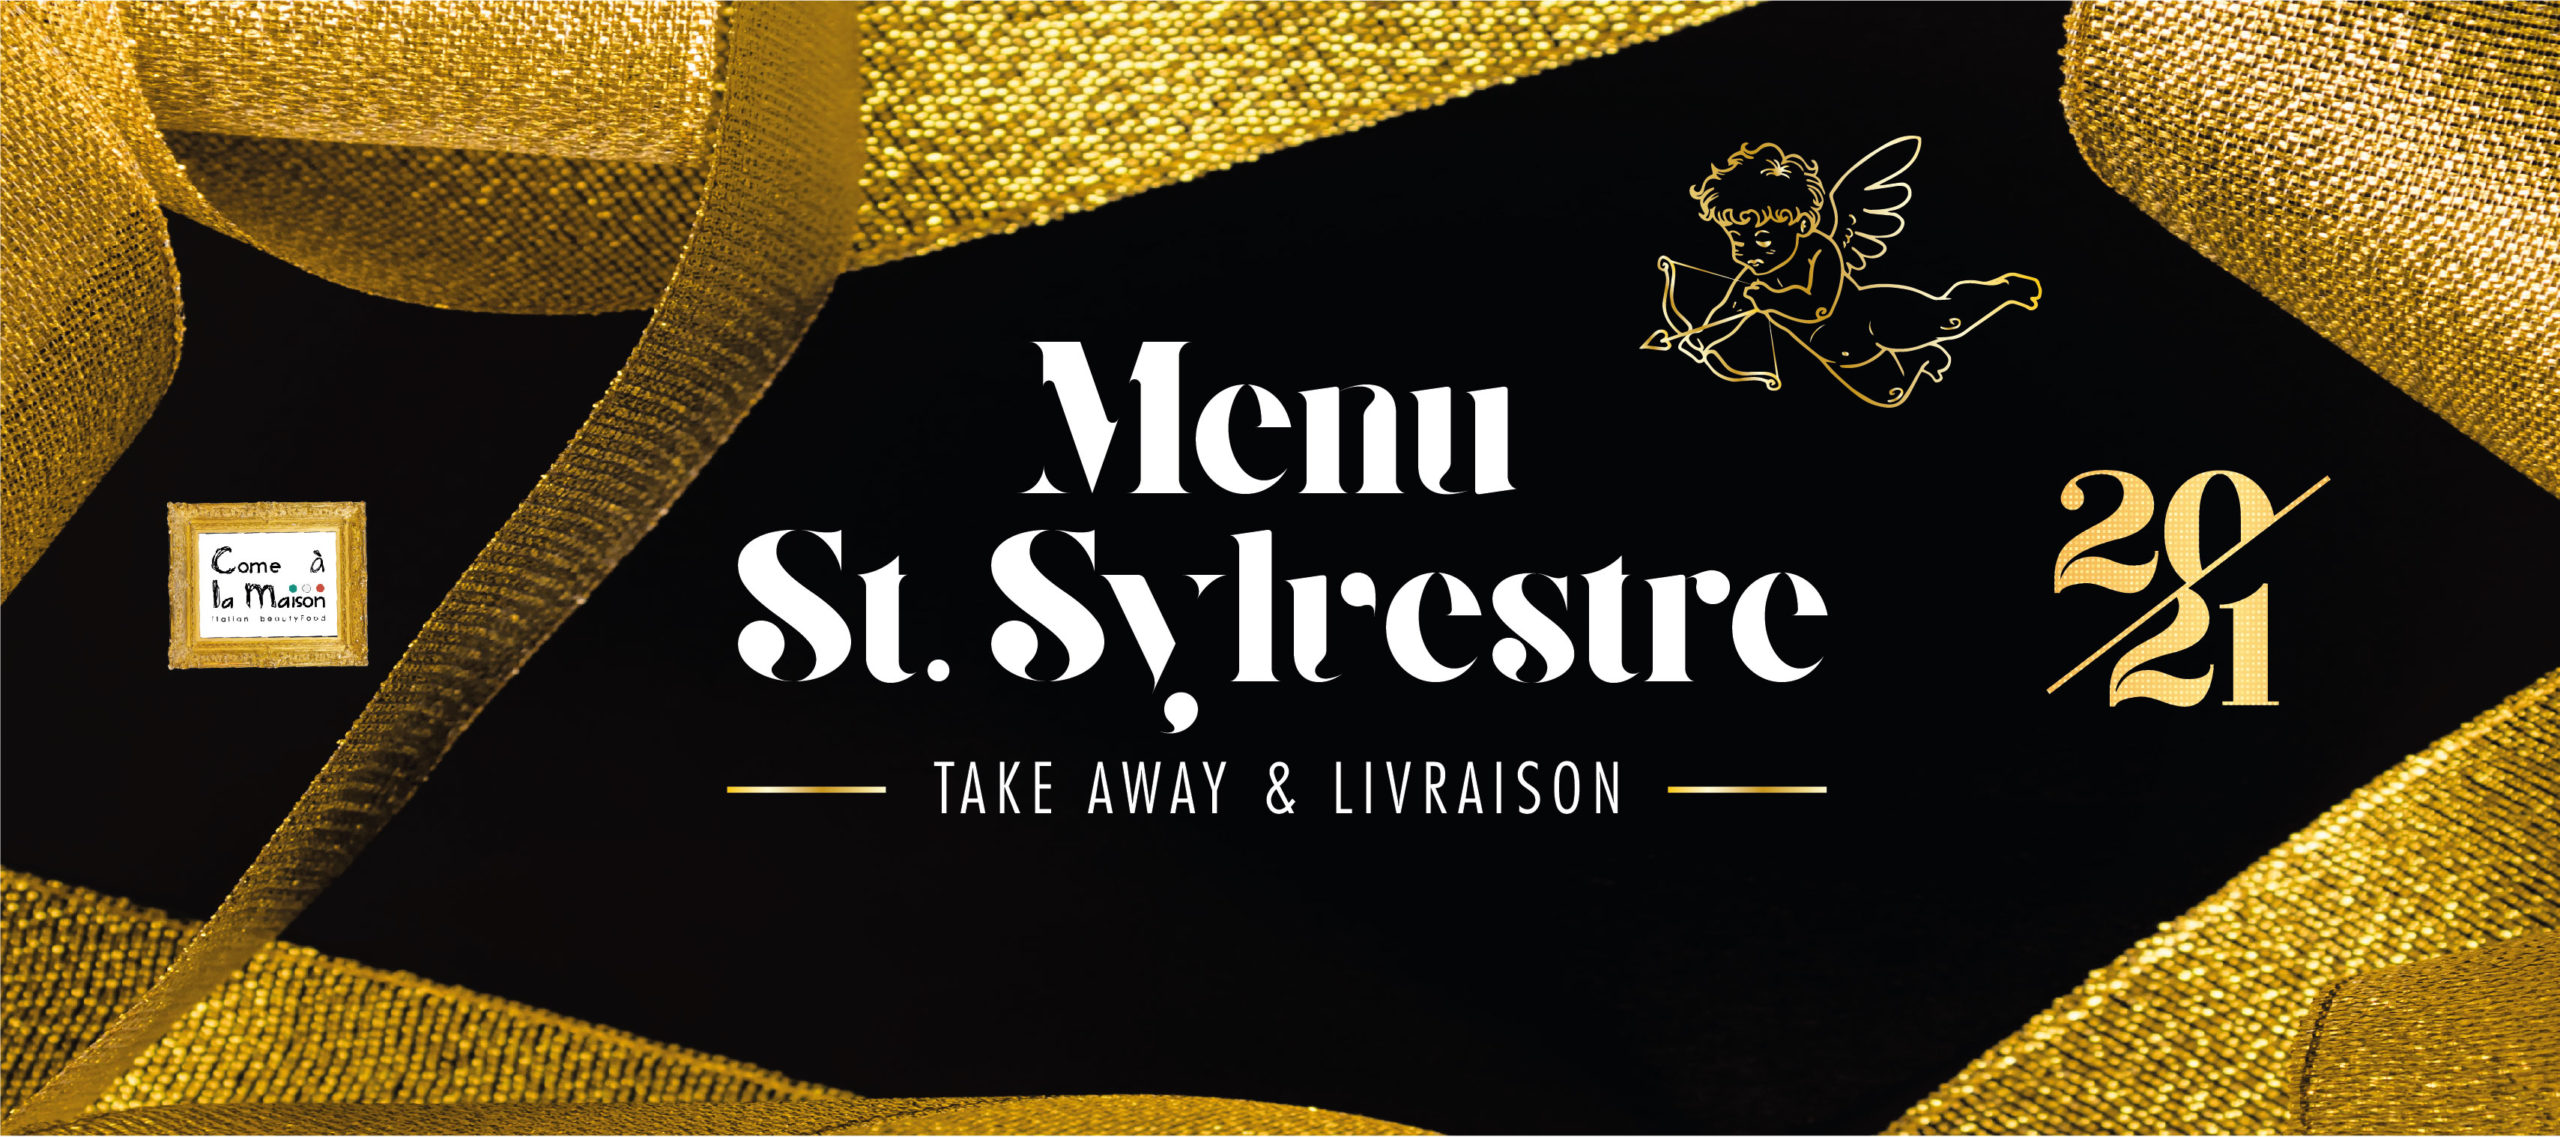 Menu de la Saint Sylvestre 2020 21 Restaurant Come a la Maison Take Away Delivery Luxembourg